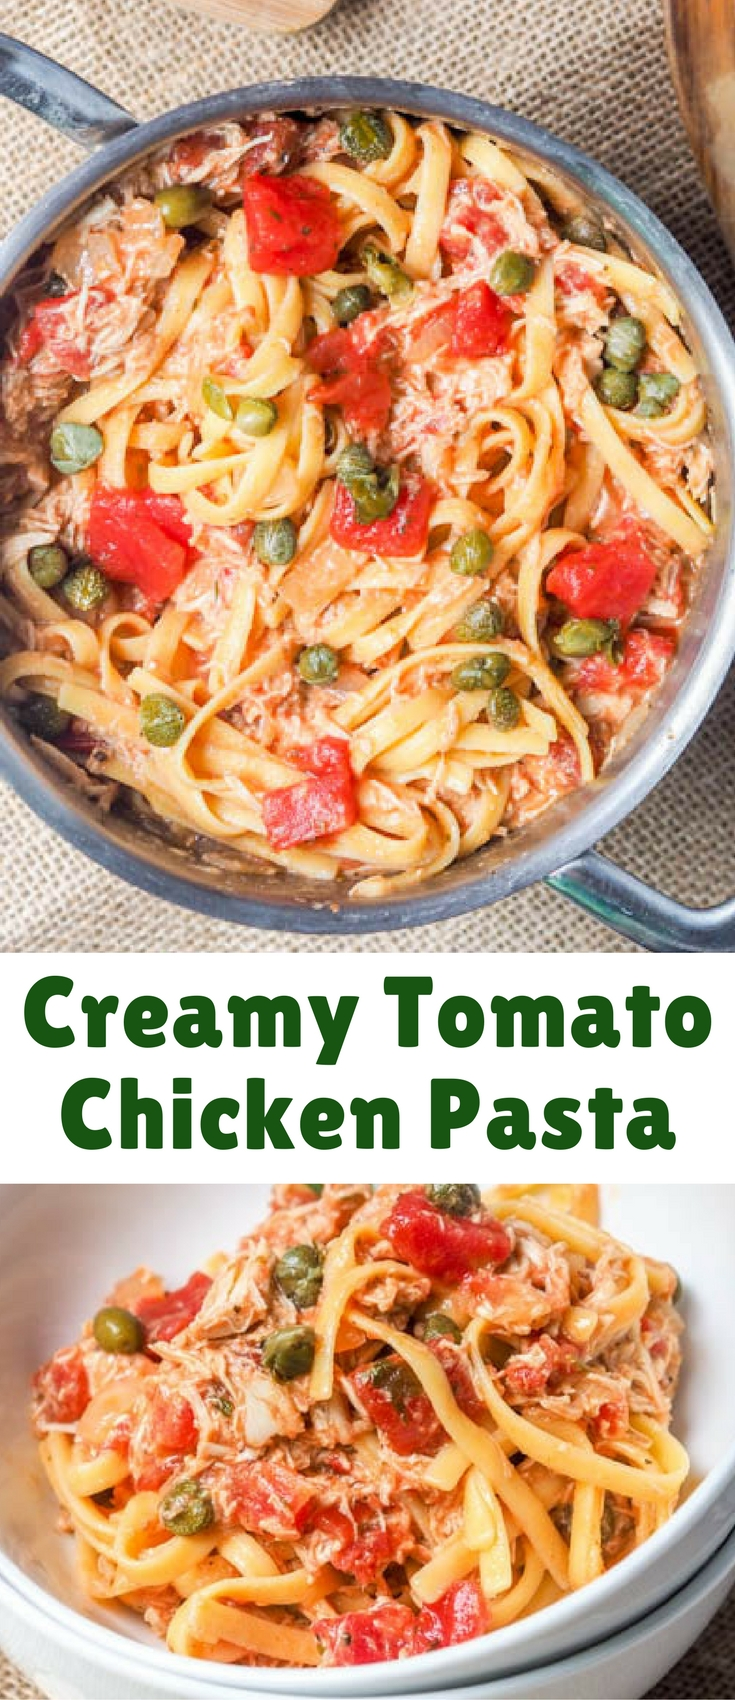 Creamy tomato chicken pasta - this 30 minute recipe makes for a perfect low fuss weeknight meal. Made with shredded rotisserie chicken, capers and a tomato sauce.